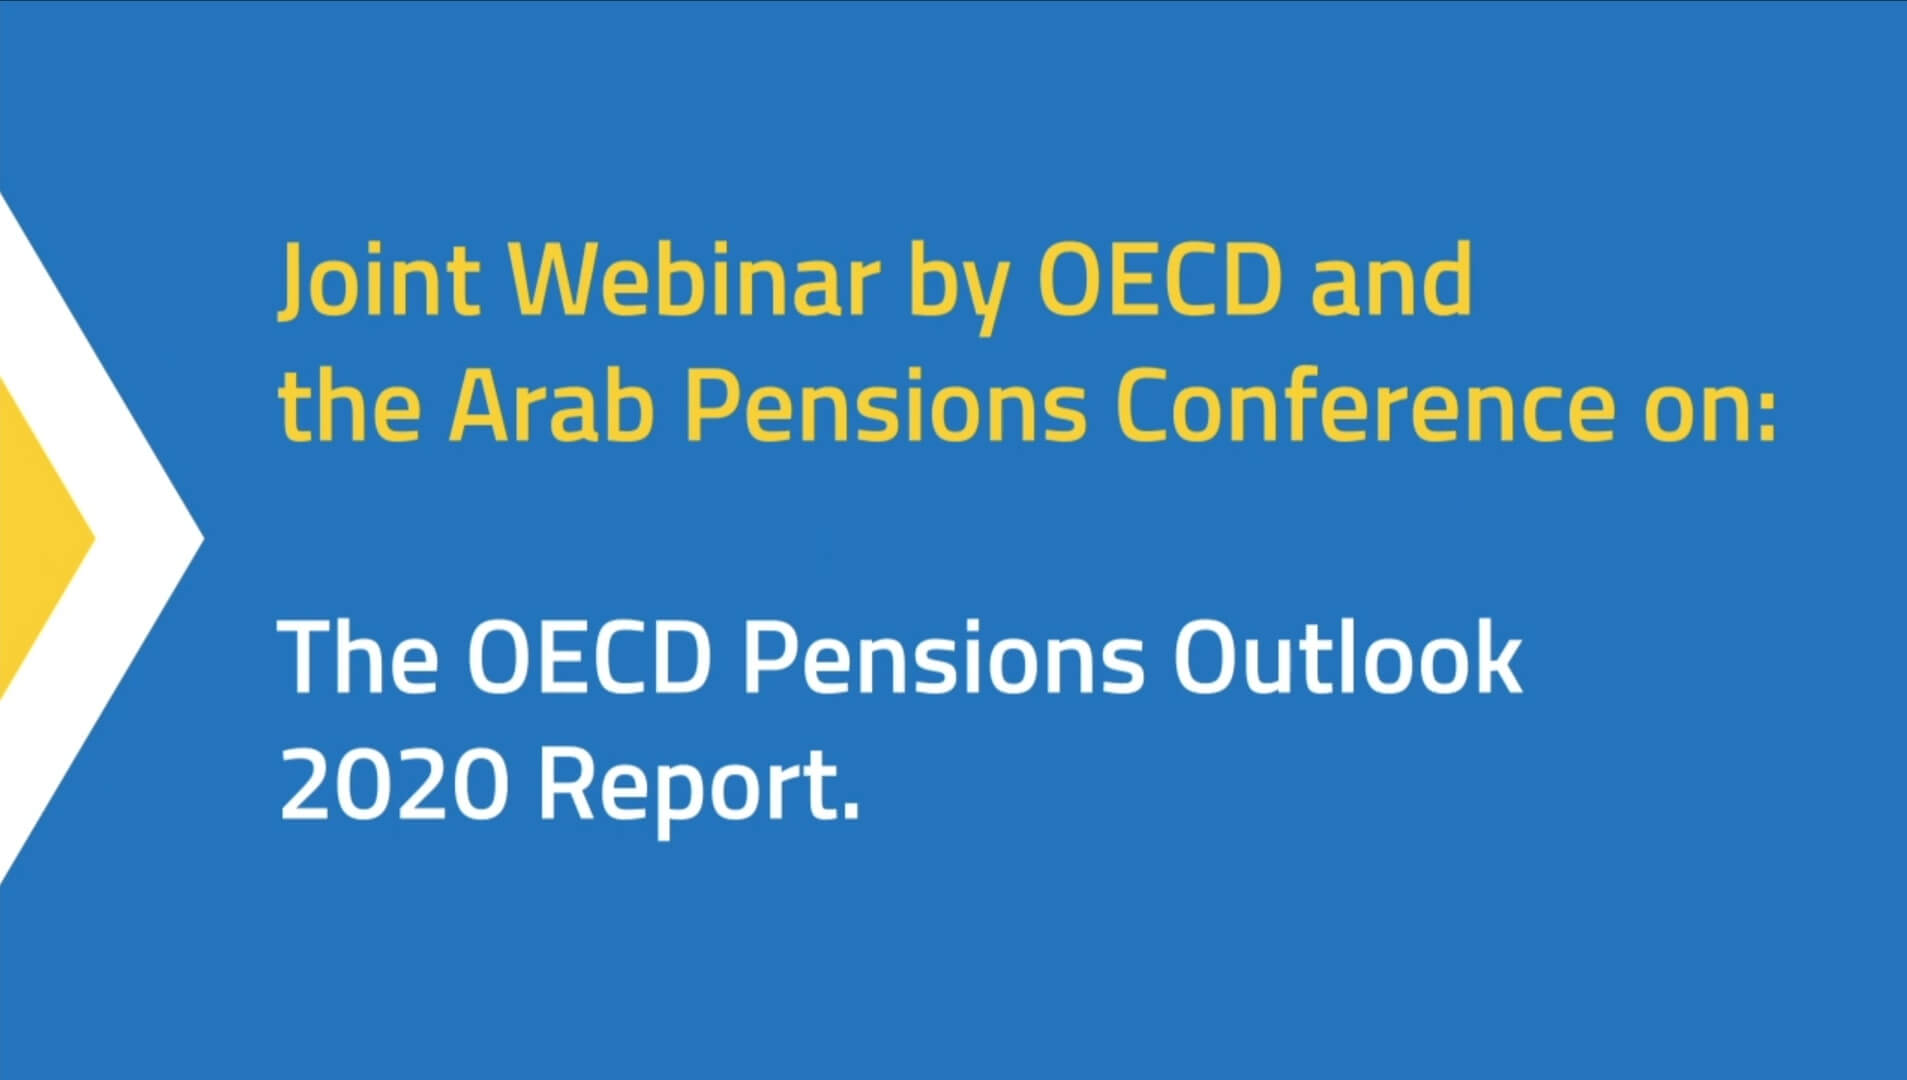 Tontine Pensions - The OECD Pensions Outlook 2020